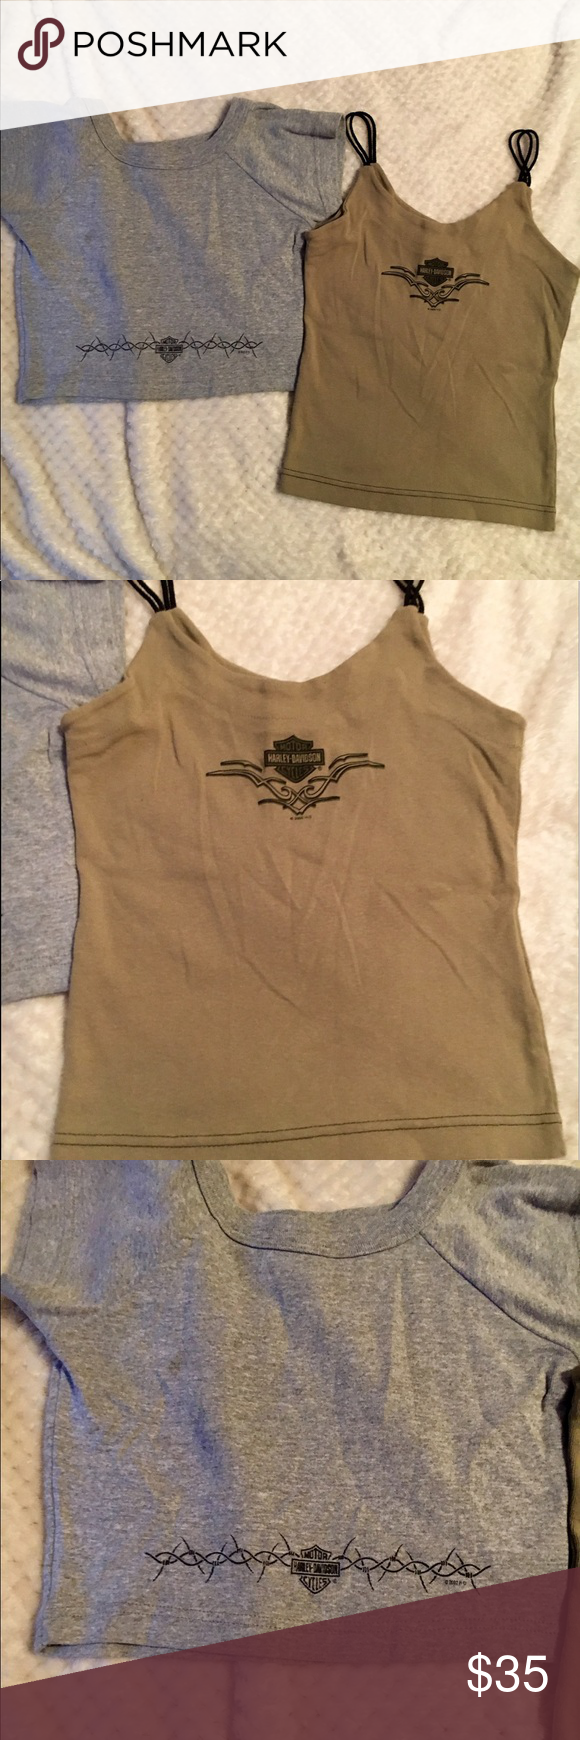 2 Harley Davidson tops In great condition 2 Harley Davidson tops size small, gray crop top t shirt and Double rope strap tank top black and brown Harley-Davidson Tops Tank Tops